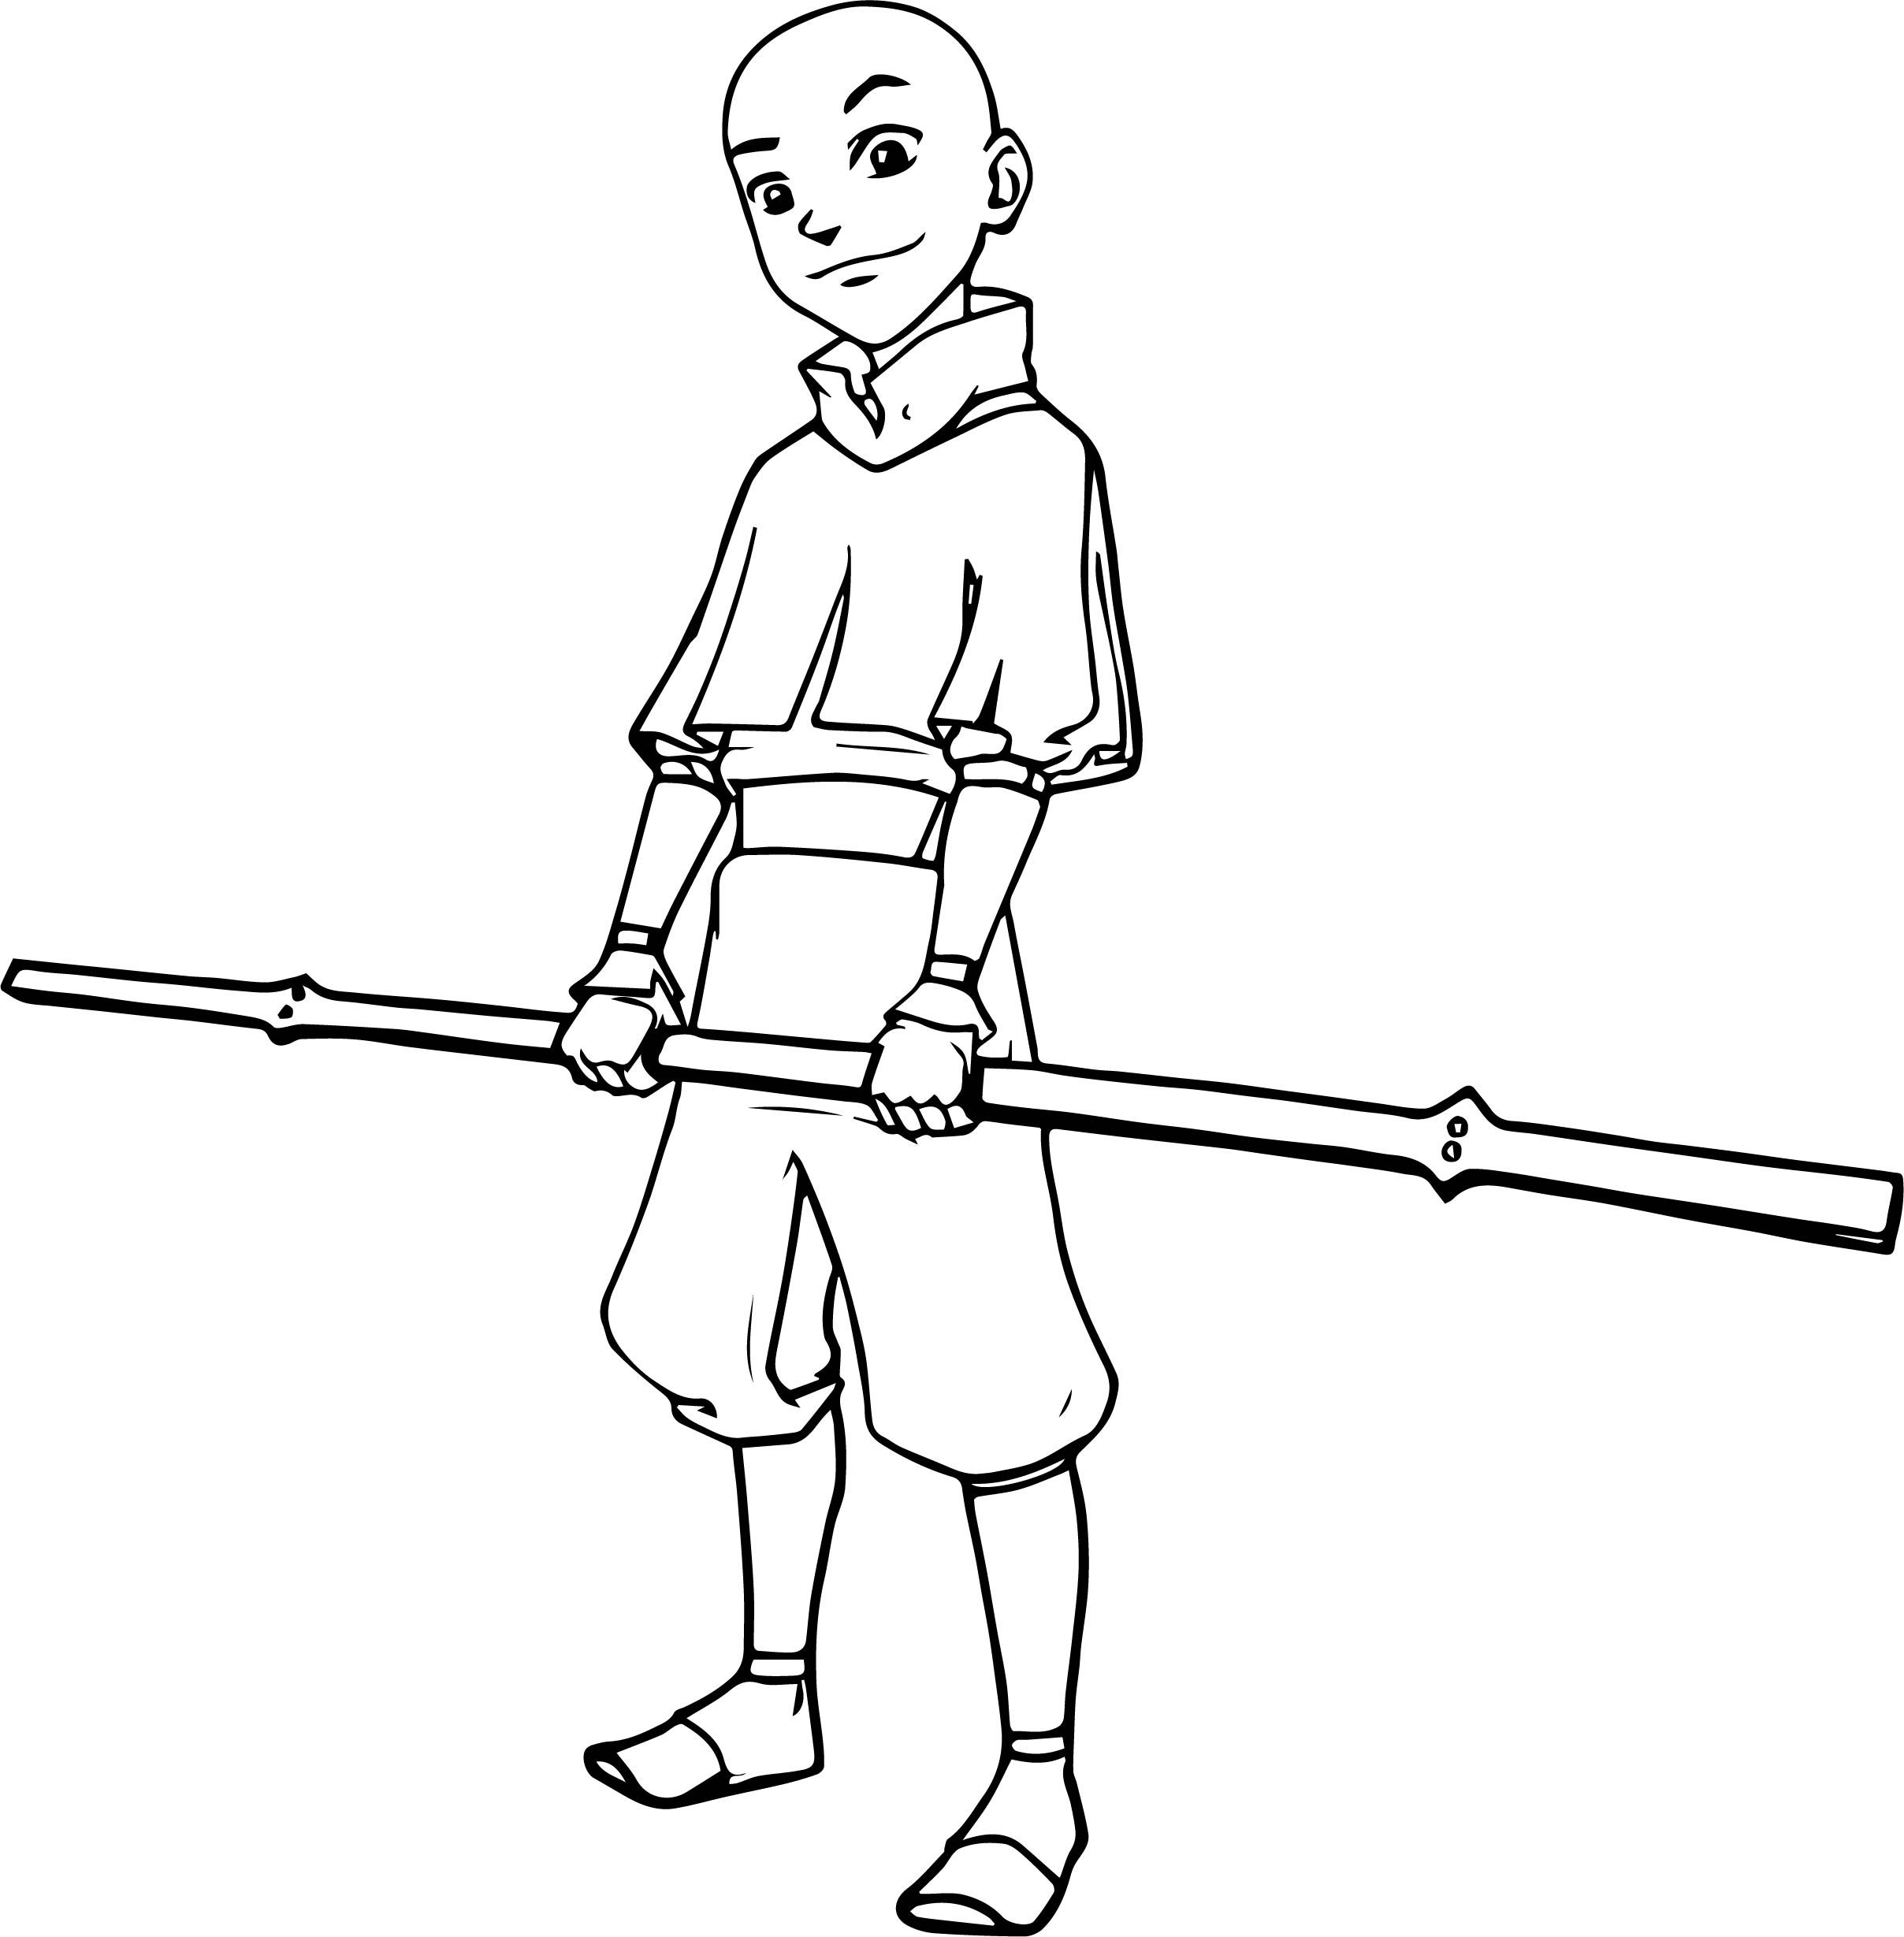 Cool Aang Avatar Stick Coloring Page Batman Coloring Pages